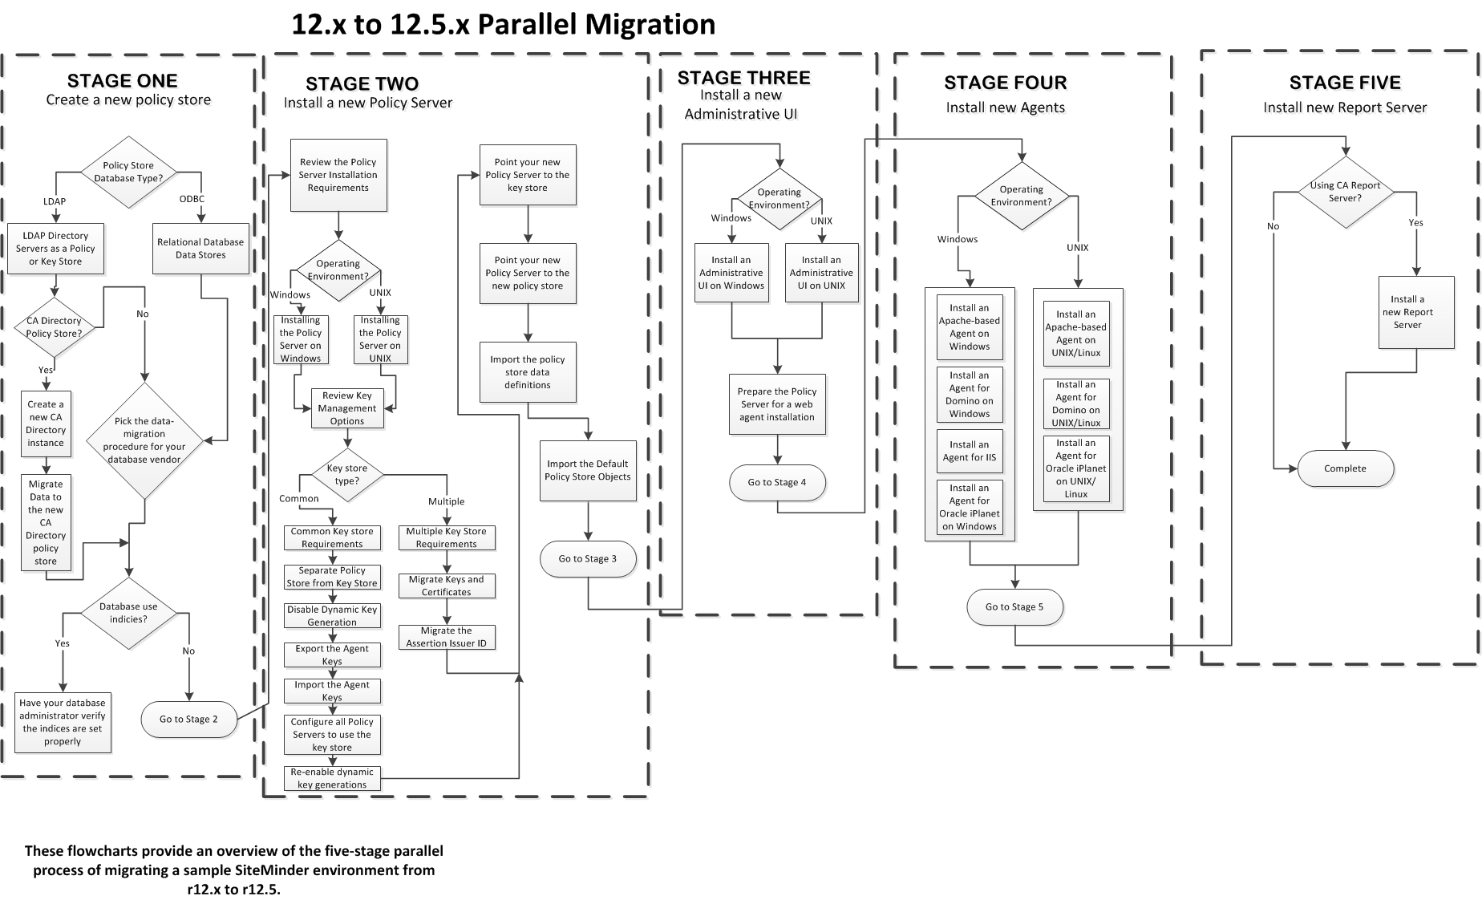 CA Single Sign-On 12.x to 12.5 Parallel Upgrade Flow